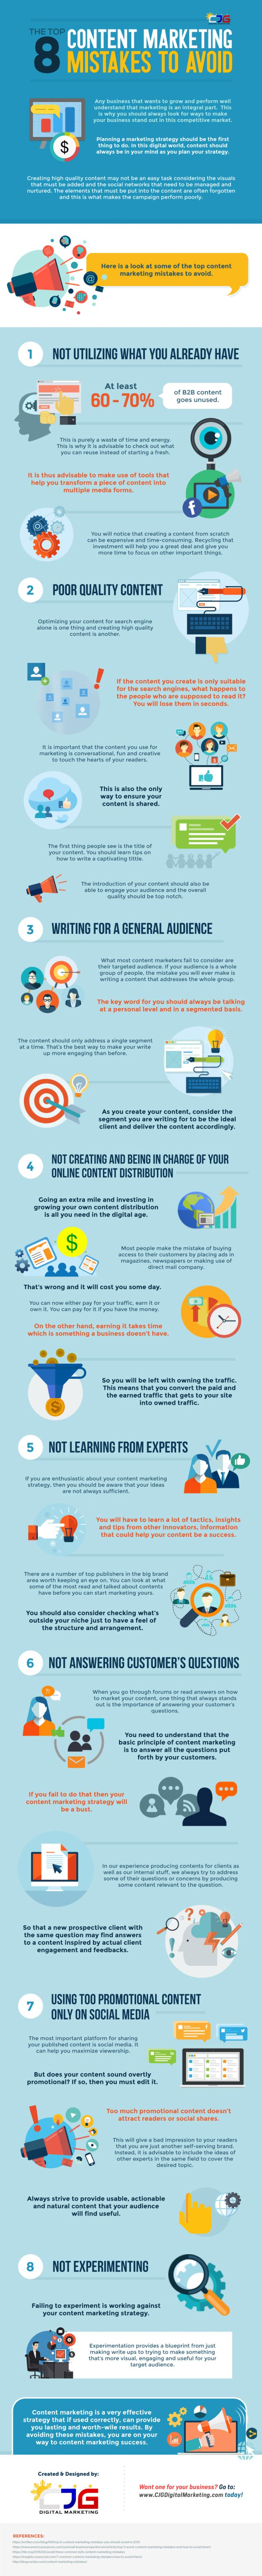 The Top 8 Content Marketing Mistakes To Avoid [Infographic] - @redwebdesign